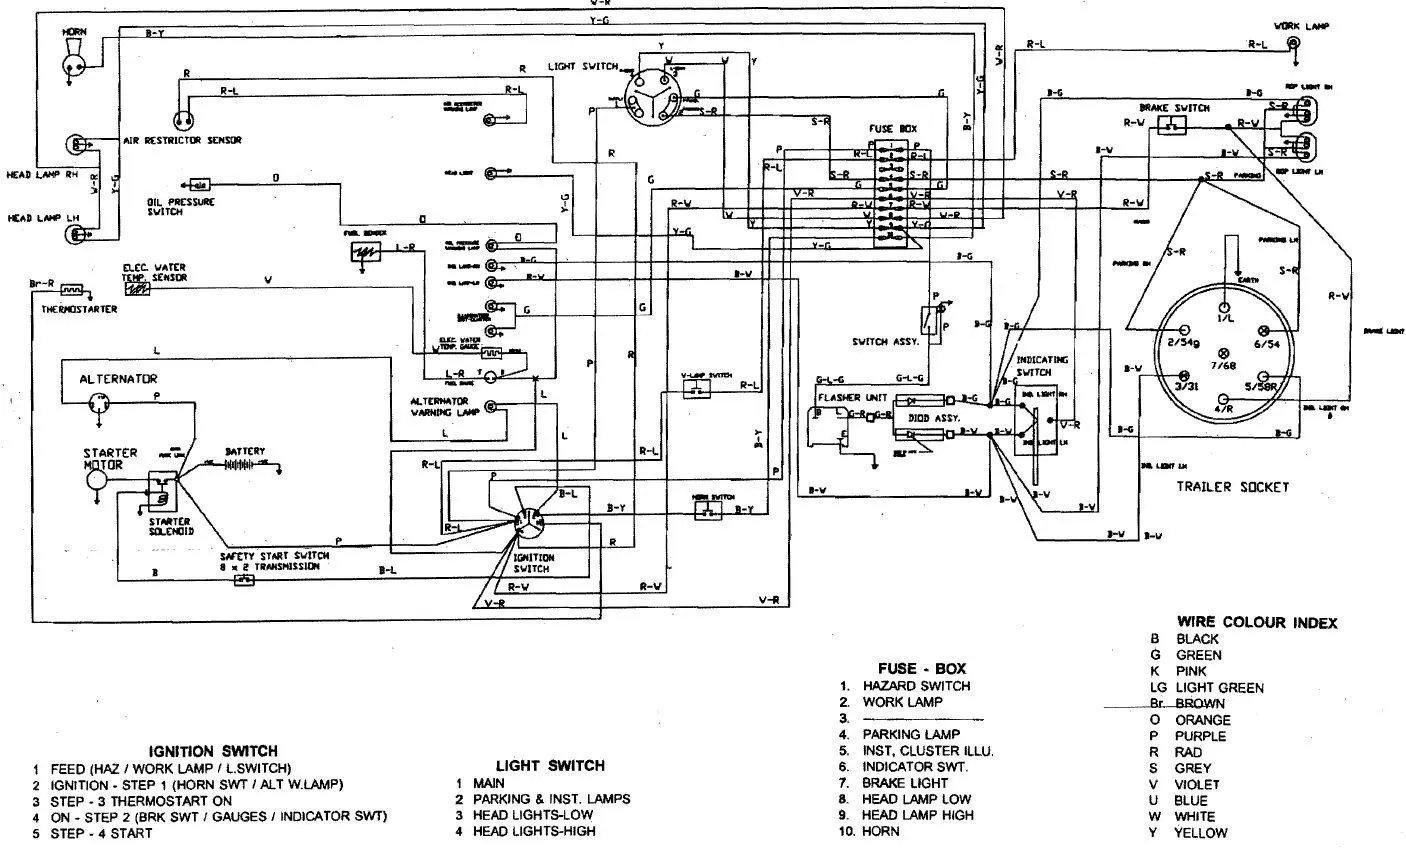 kubota ignition switch wiring diagram free diagram for student Lincoln 225 Arc Welder Wiring Diagram